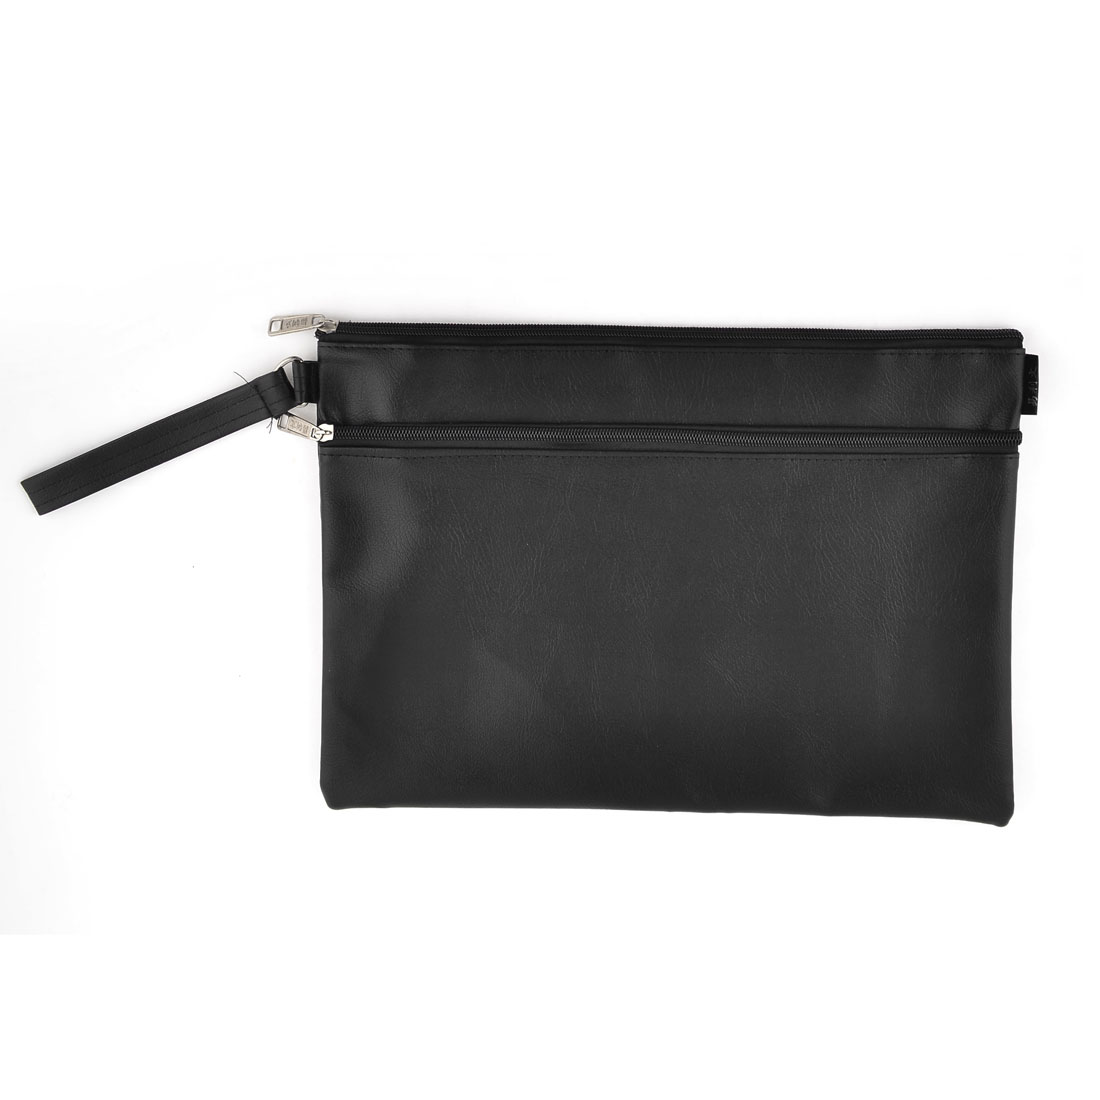 School Portable Hand Strap Zipper Closure Files Document Bag Black